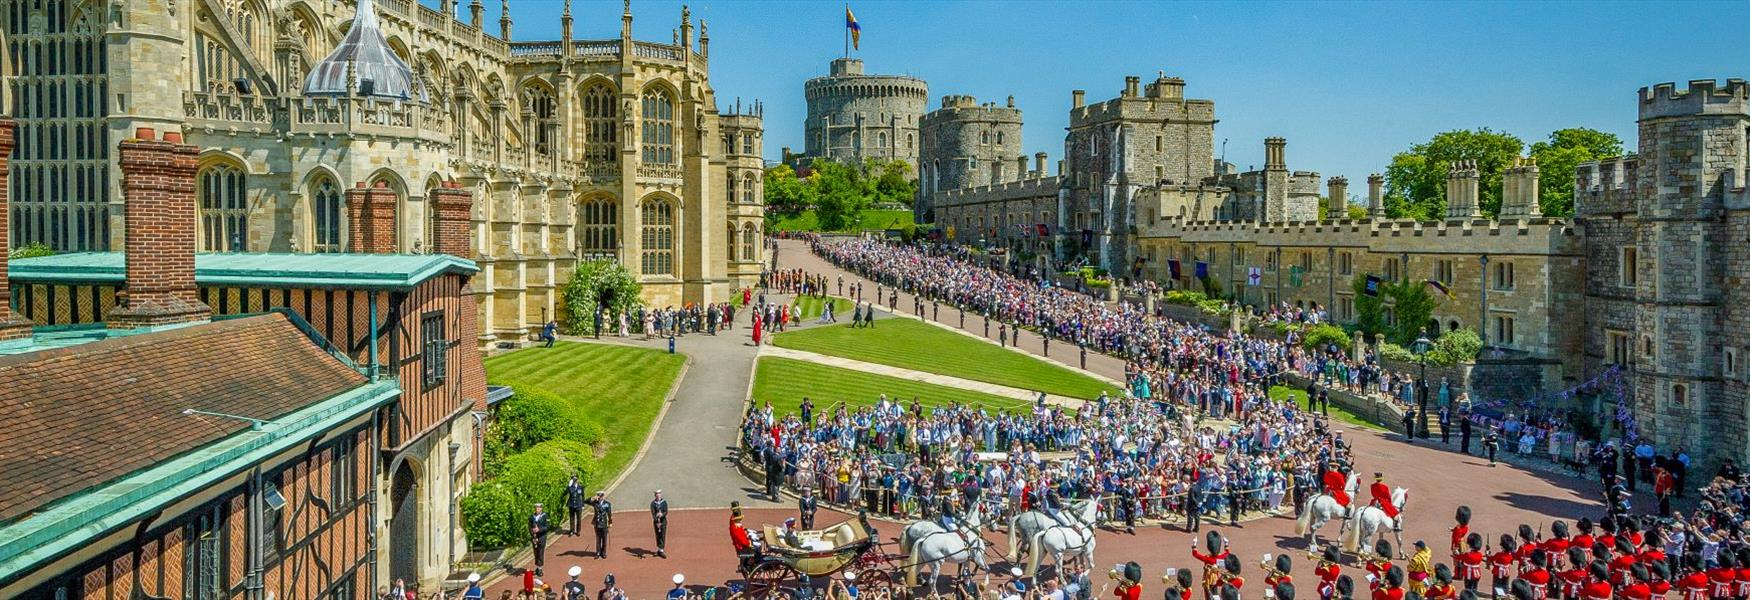 Royal Wedding at Windsor Castle